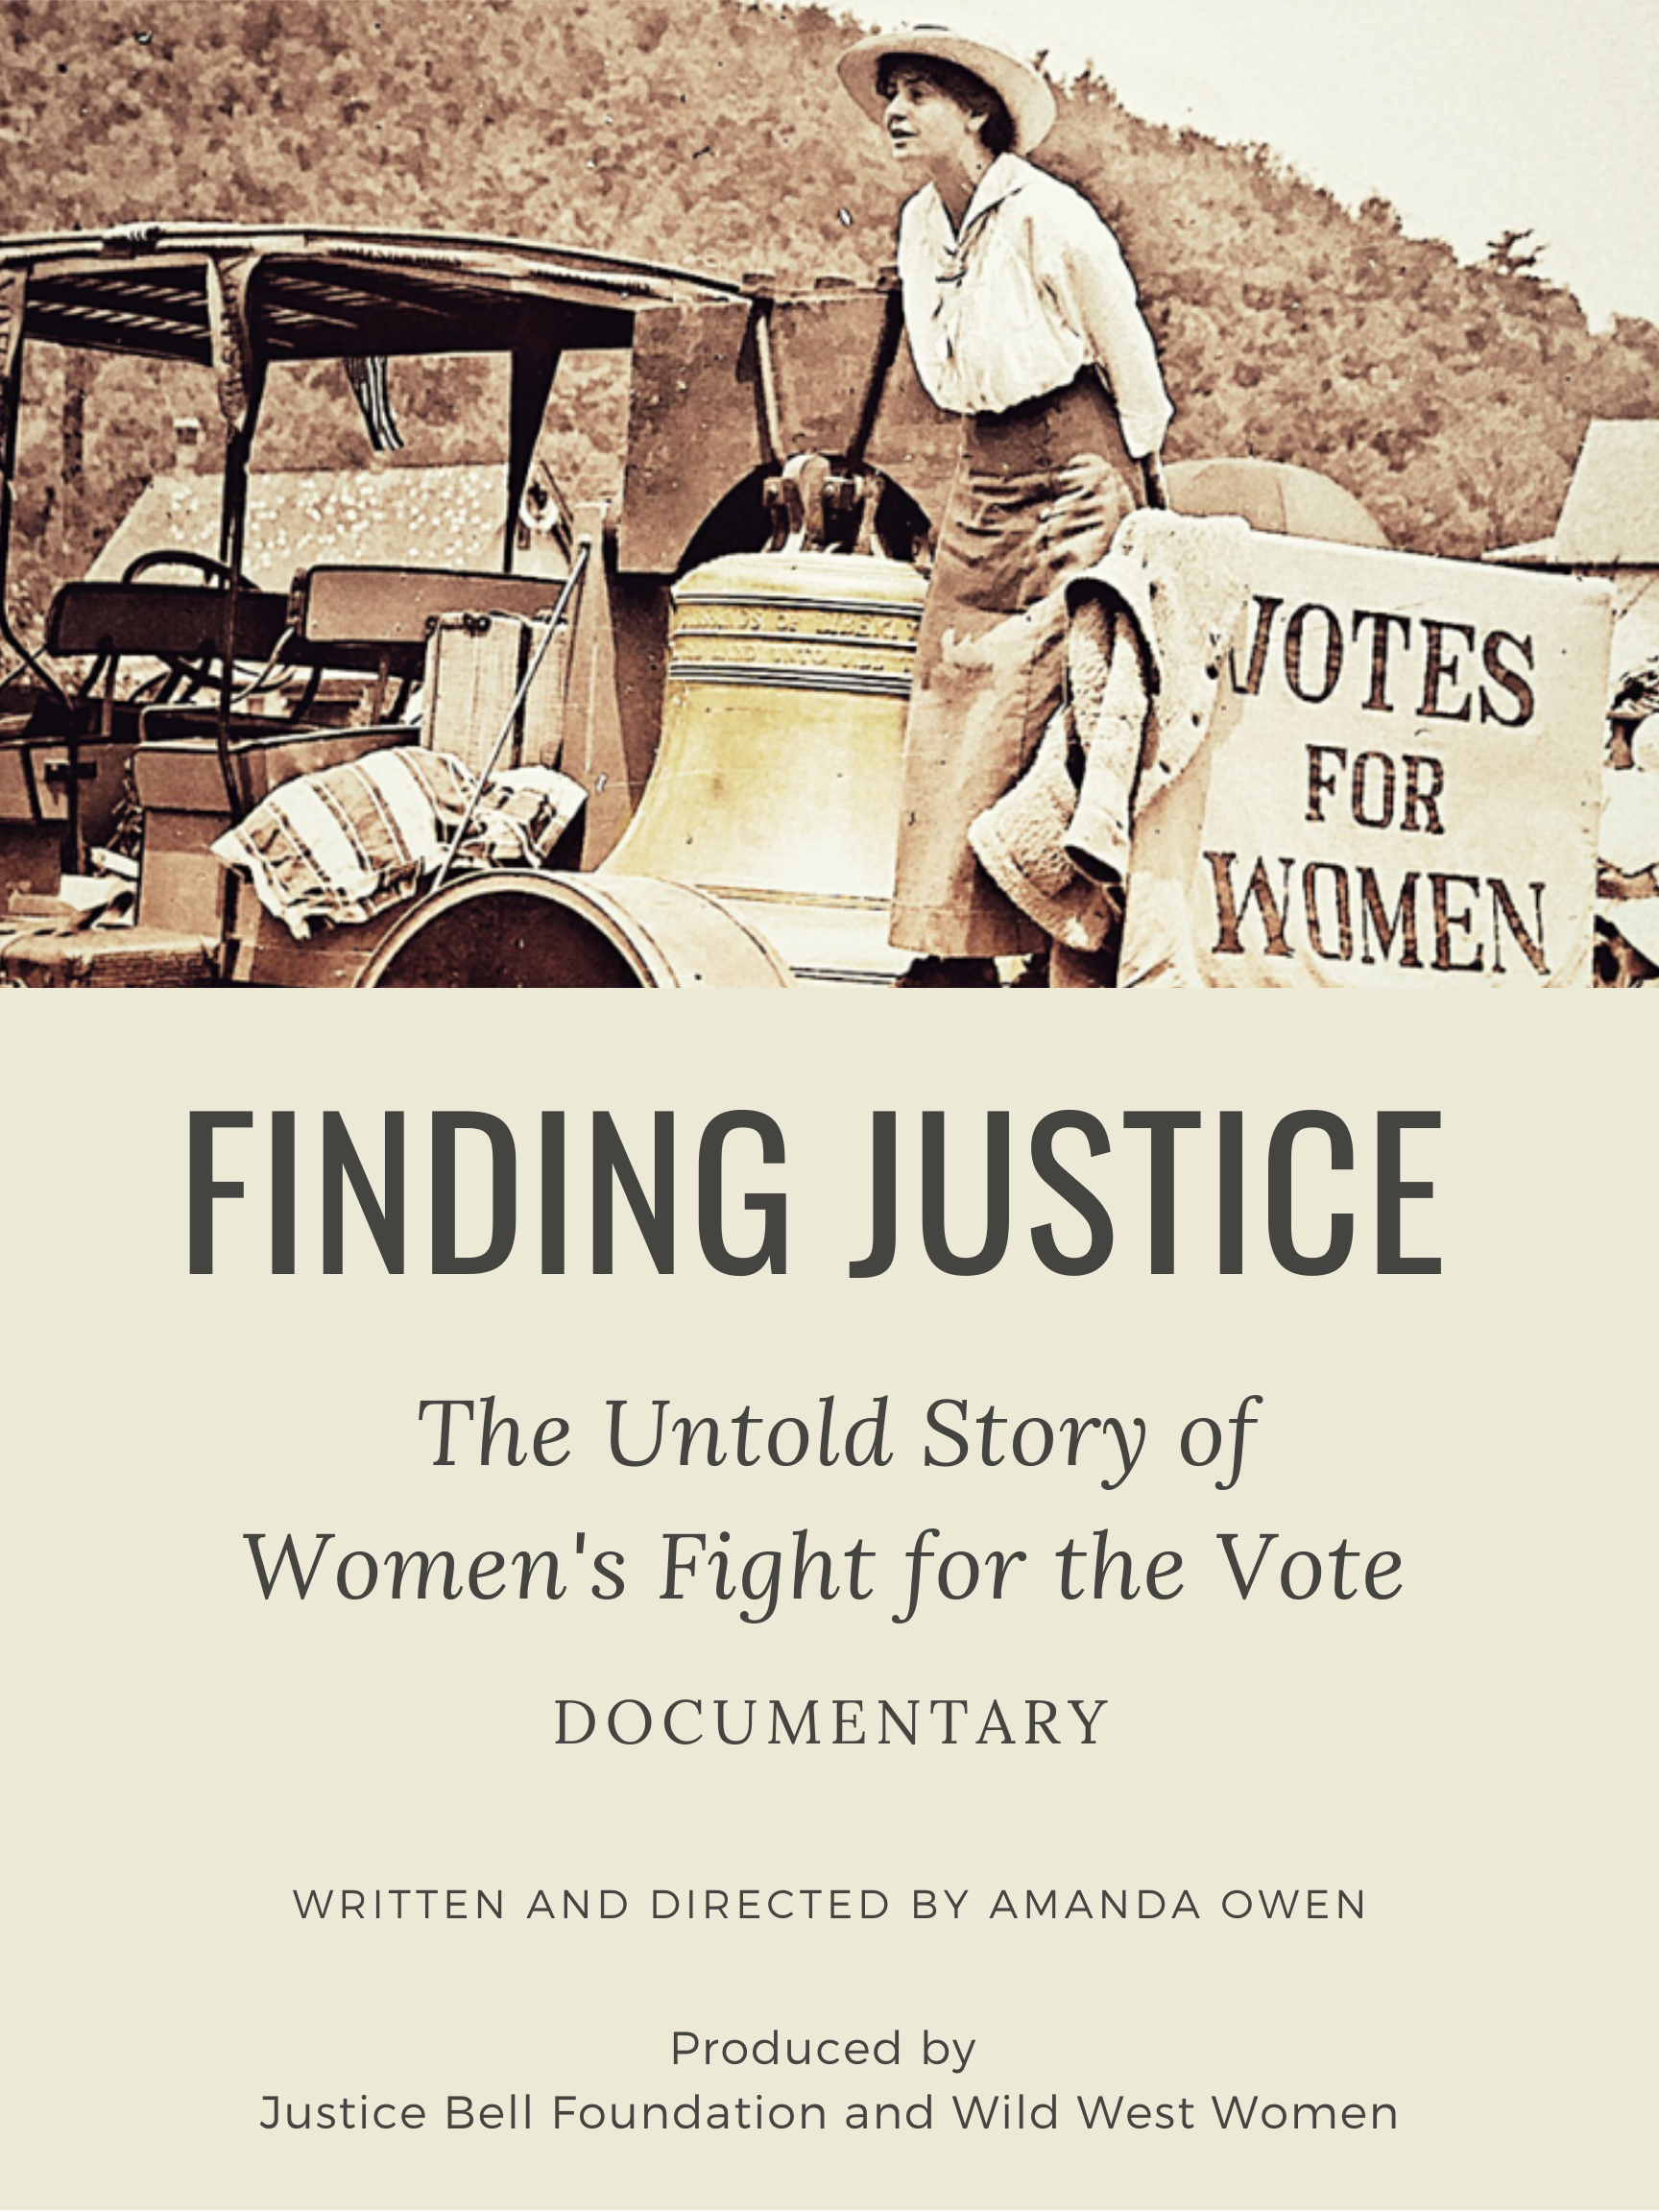 Finding Justice: The Untold Story of Women's Fight for the Vote (Movie Screening & Q&A)